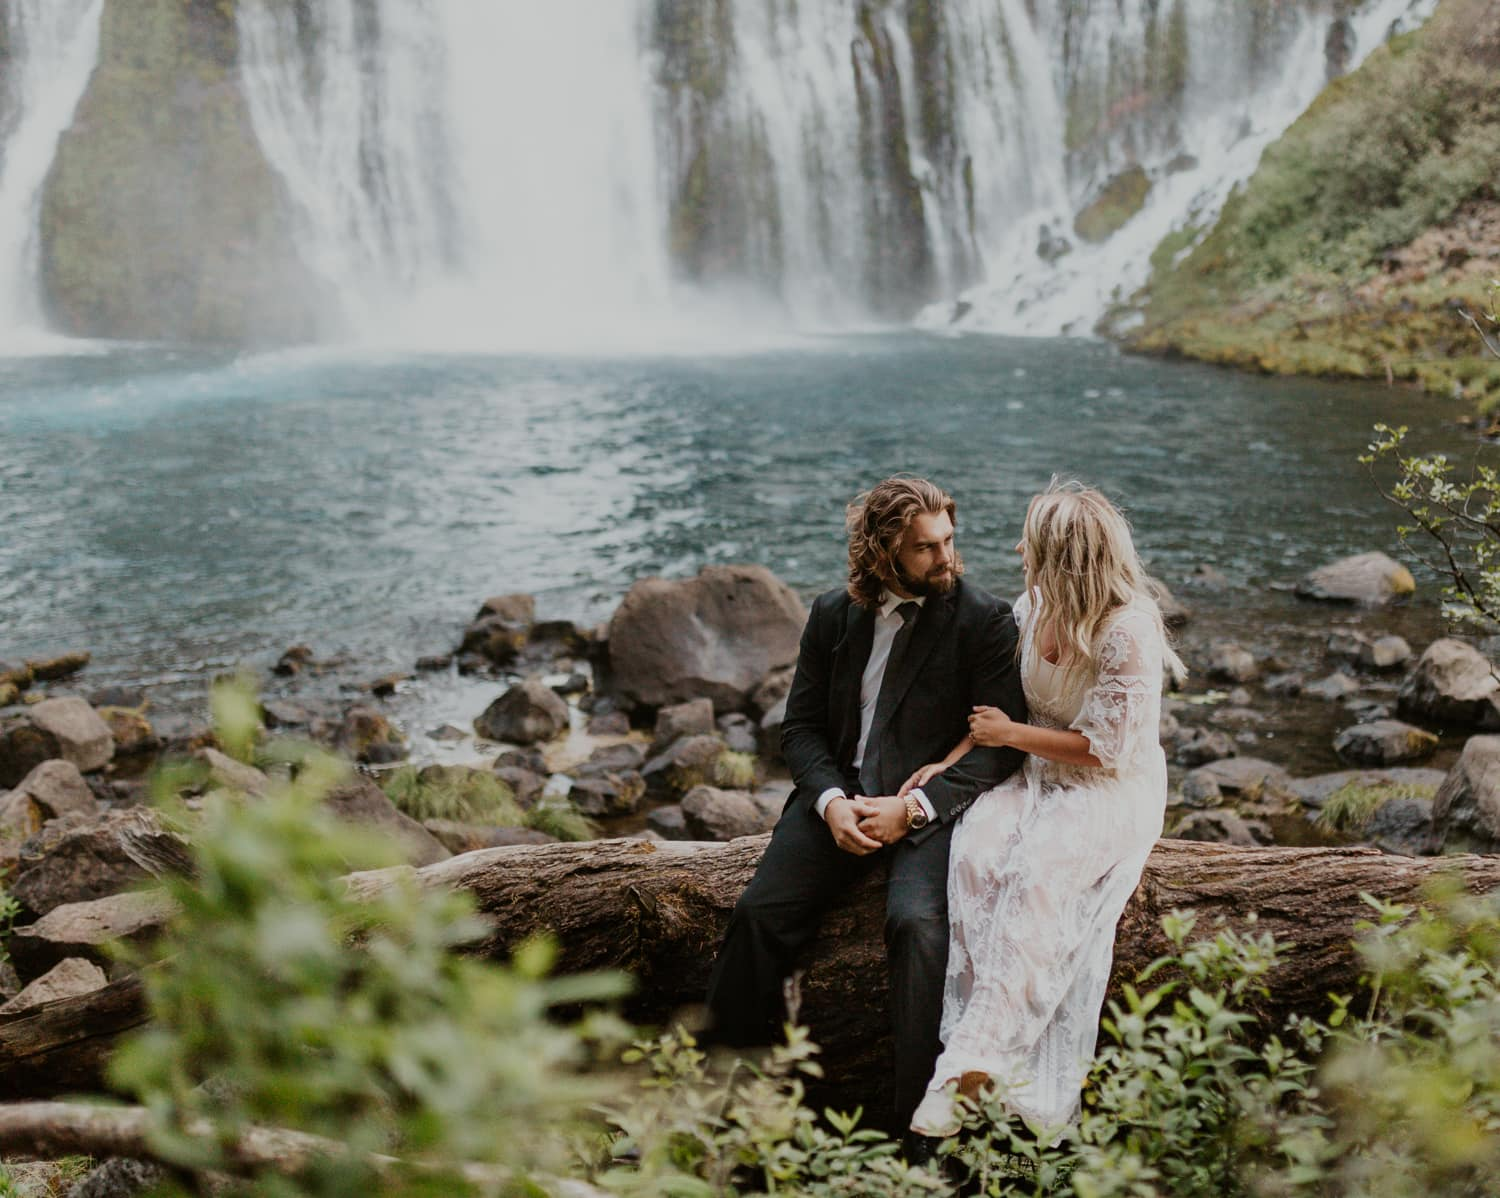 A bride and groom sitting at the base of Burney Falls on their wedding day.